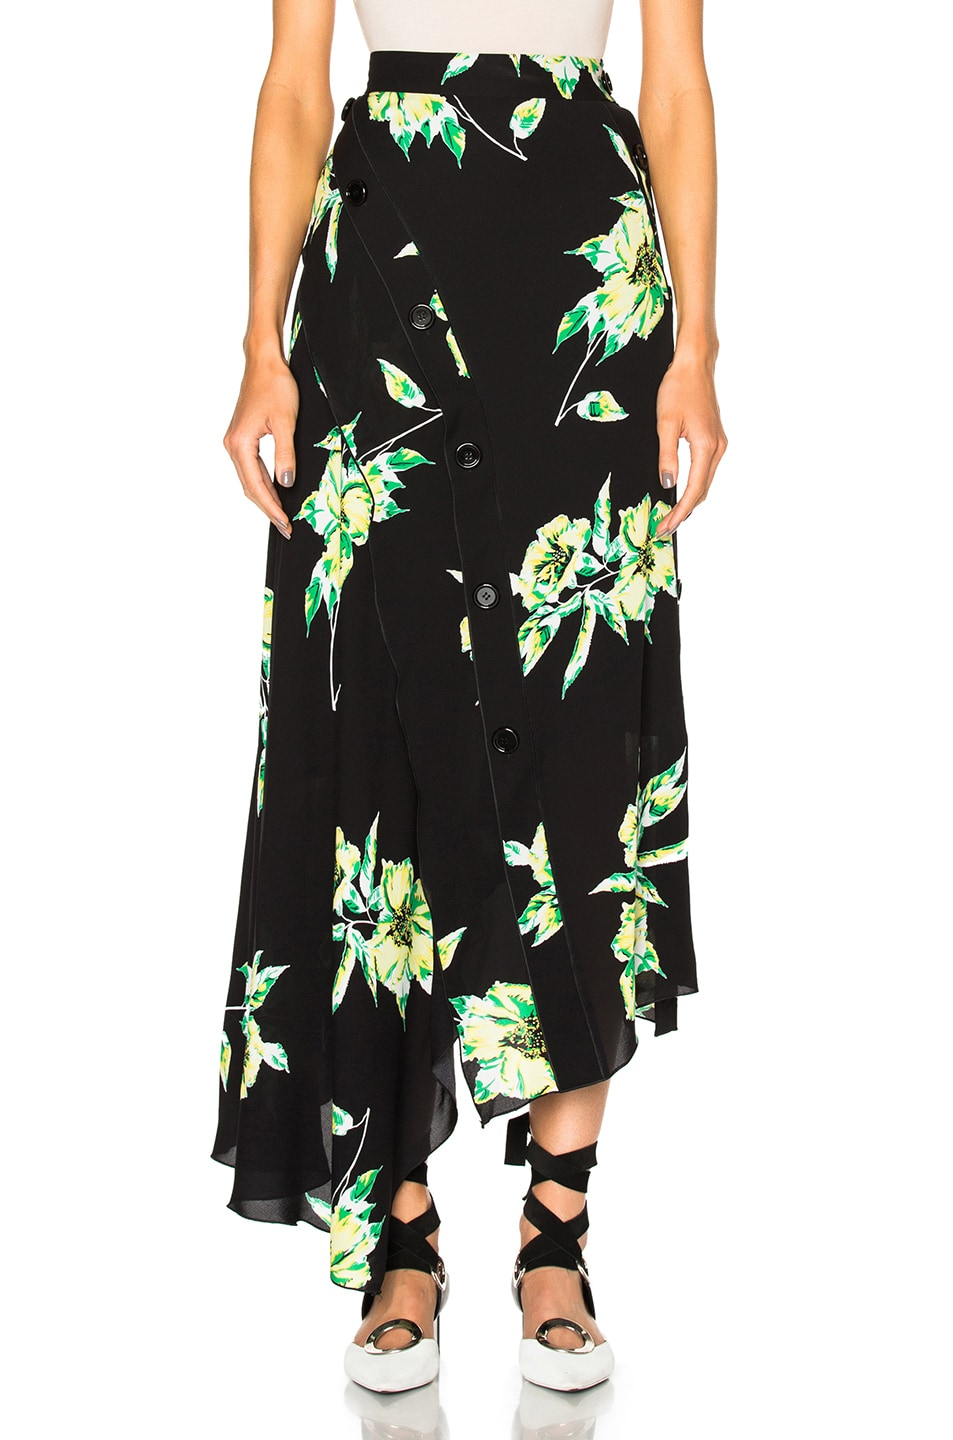 Image 1 of Proenza Schouler Printed Crepe Georgette Asymmetric Skirt in Black & Green Lilly Print